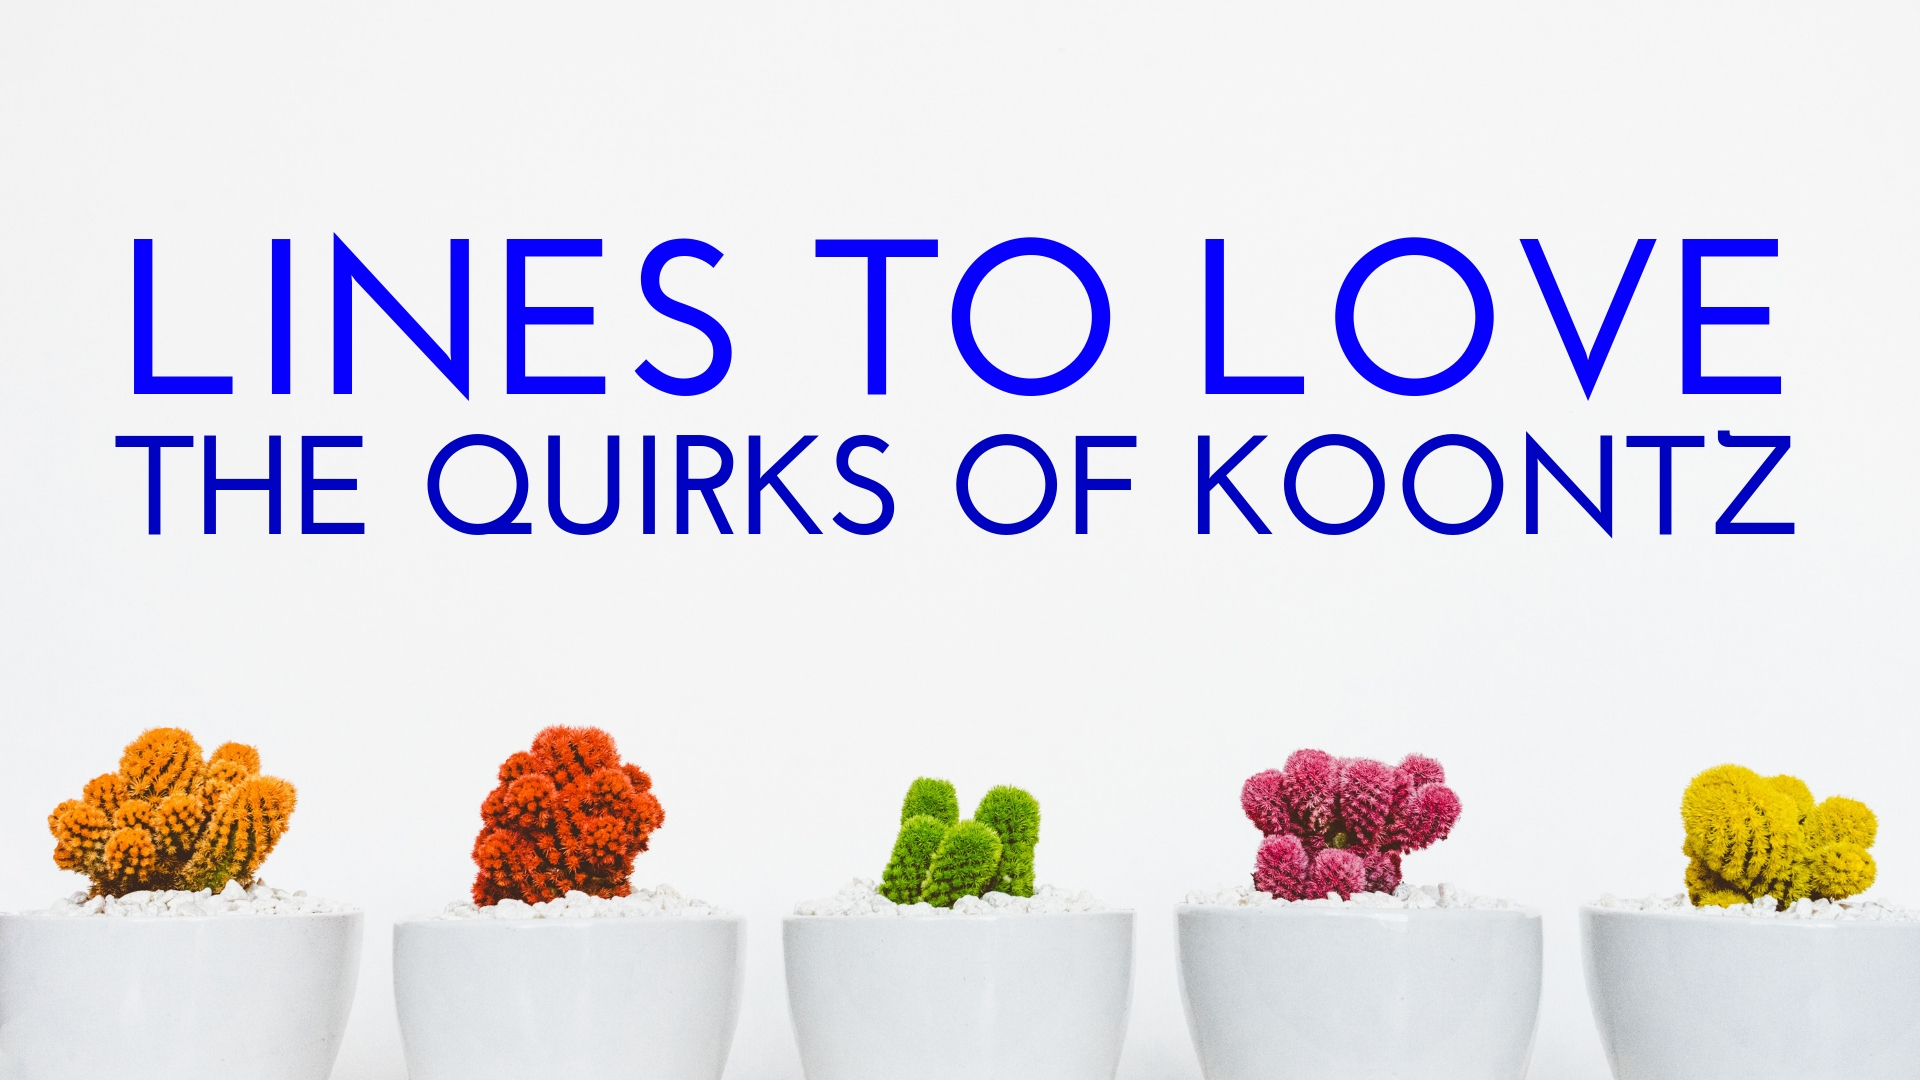 banner-lines-to-love-the-quirks-0f-koontz-5.jpg